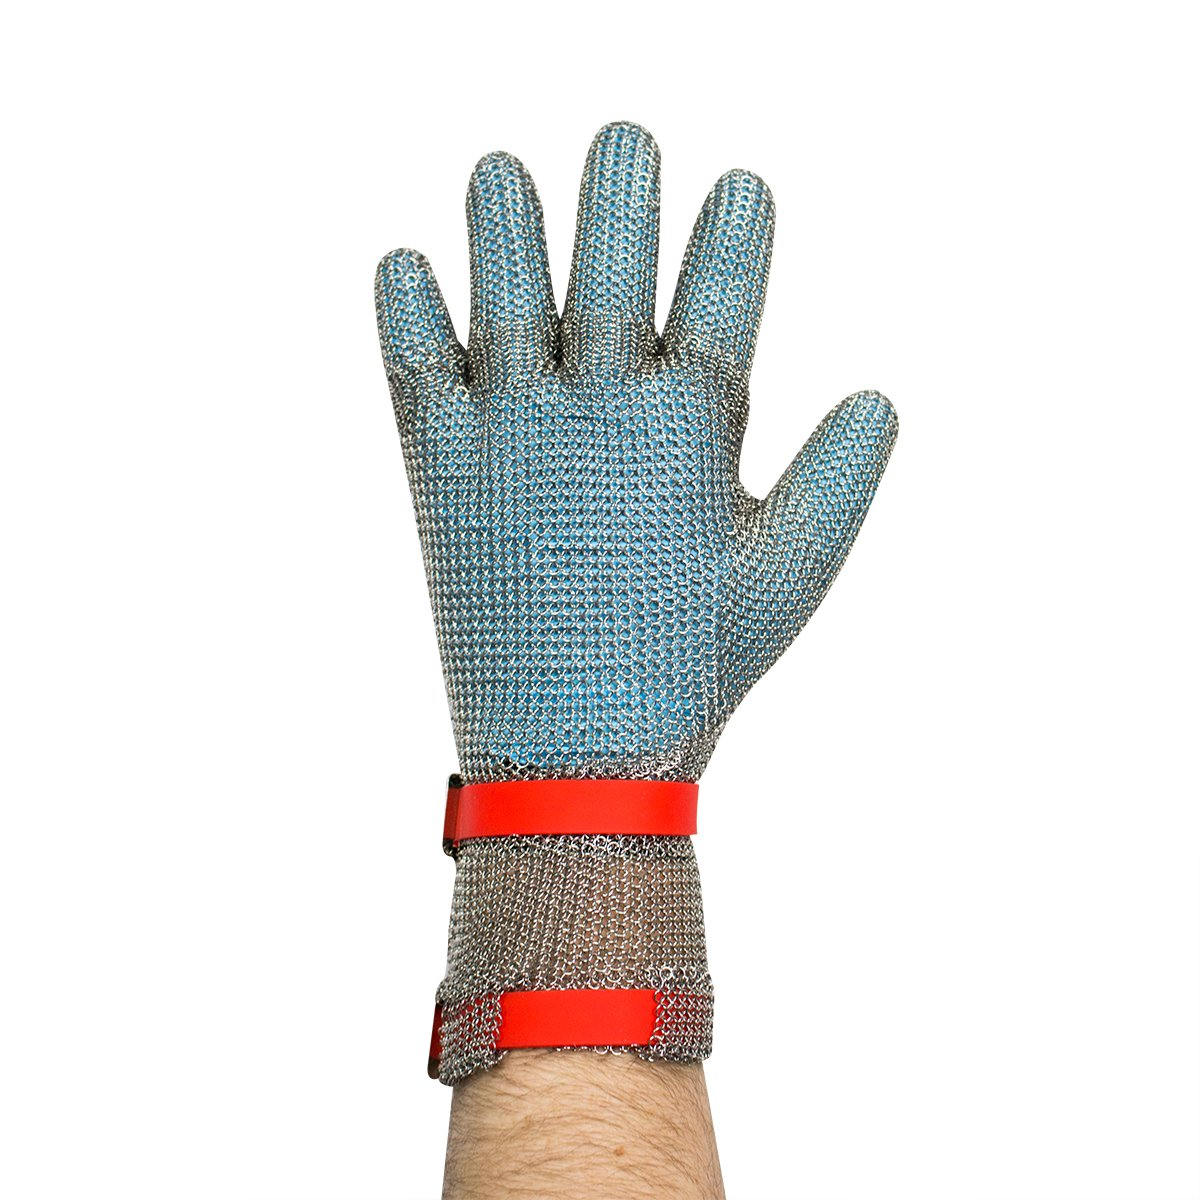 UltraSource Cut Resistant Stainless Steel Mesh Glove, Extended Cuff with Silicone Straps,  Size X-Large (One Glove)